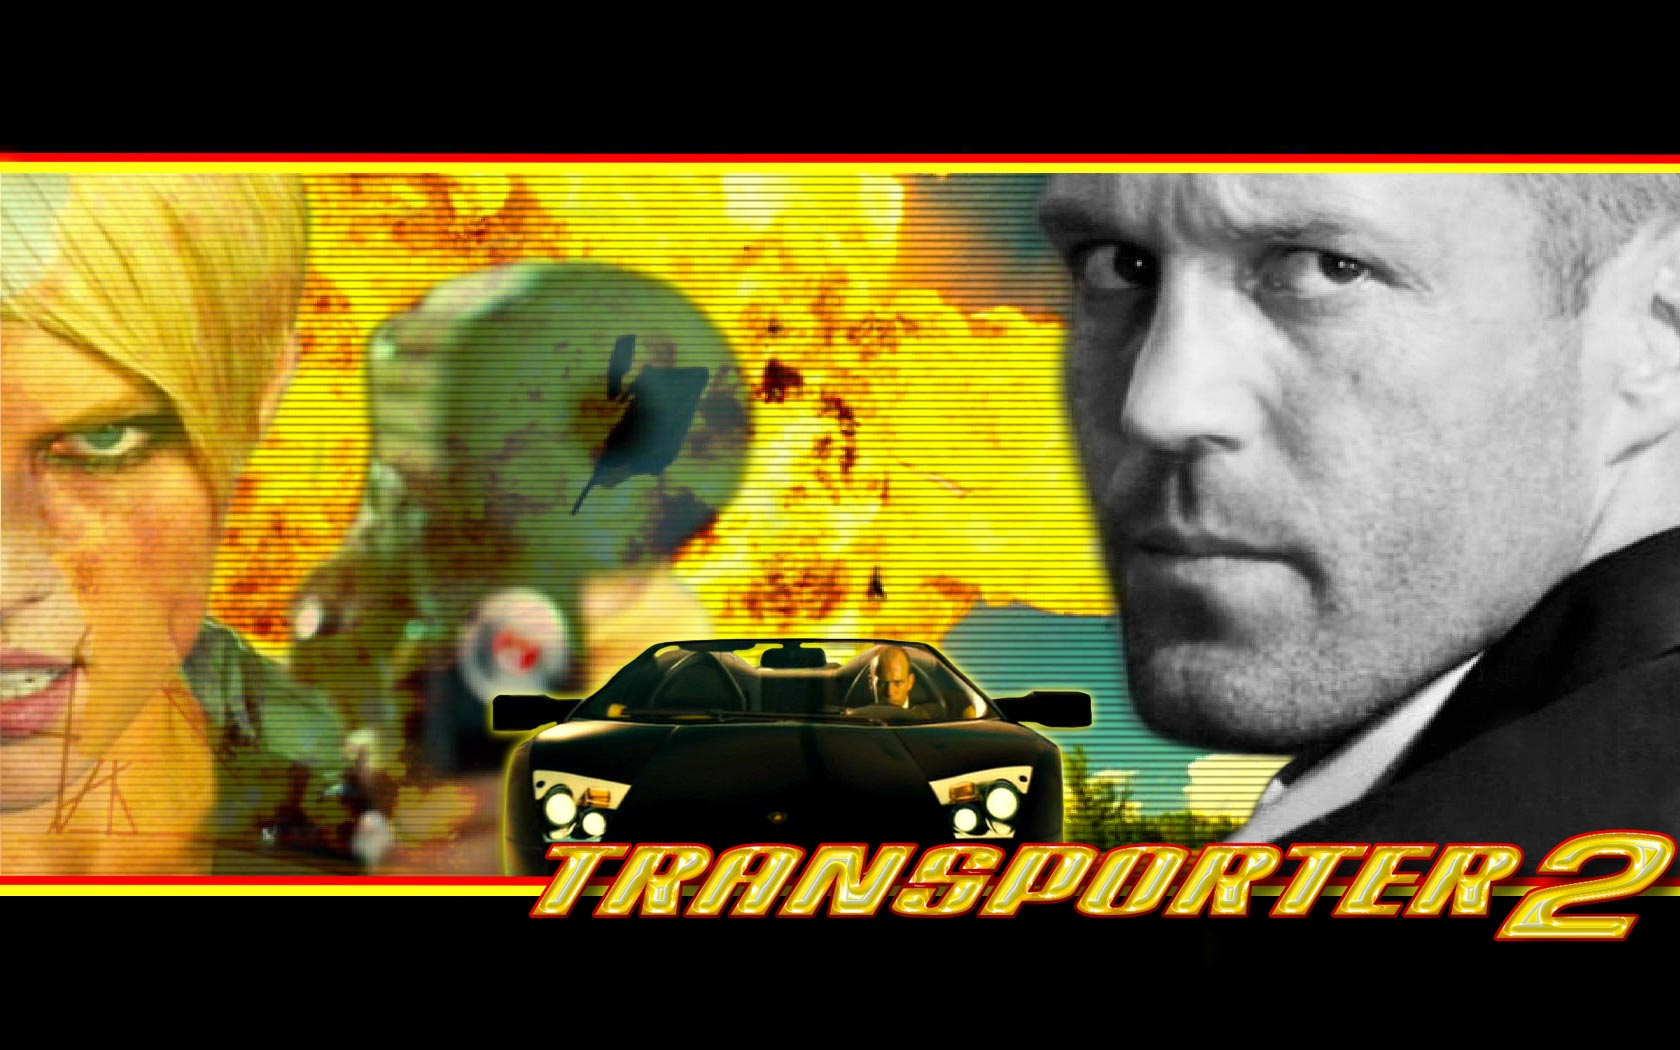 Download movie transporter2 wallpaper, 'Transporter 2 2'.